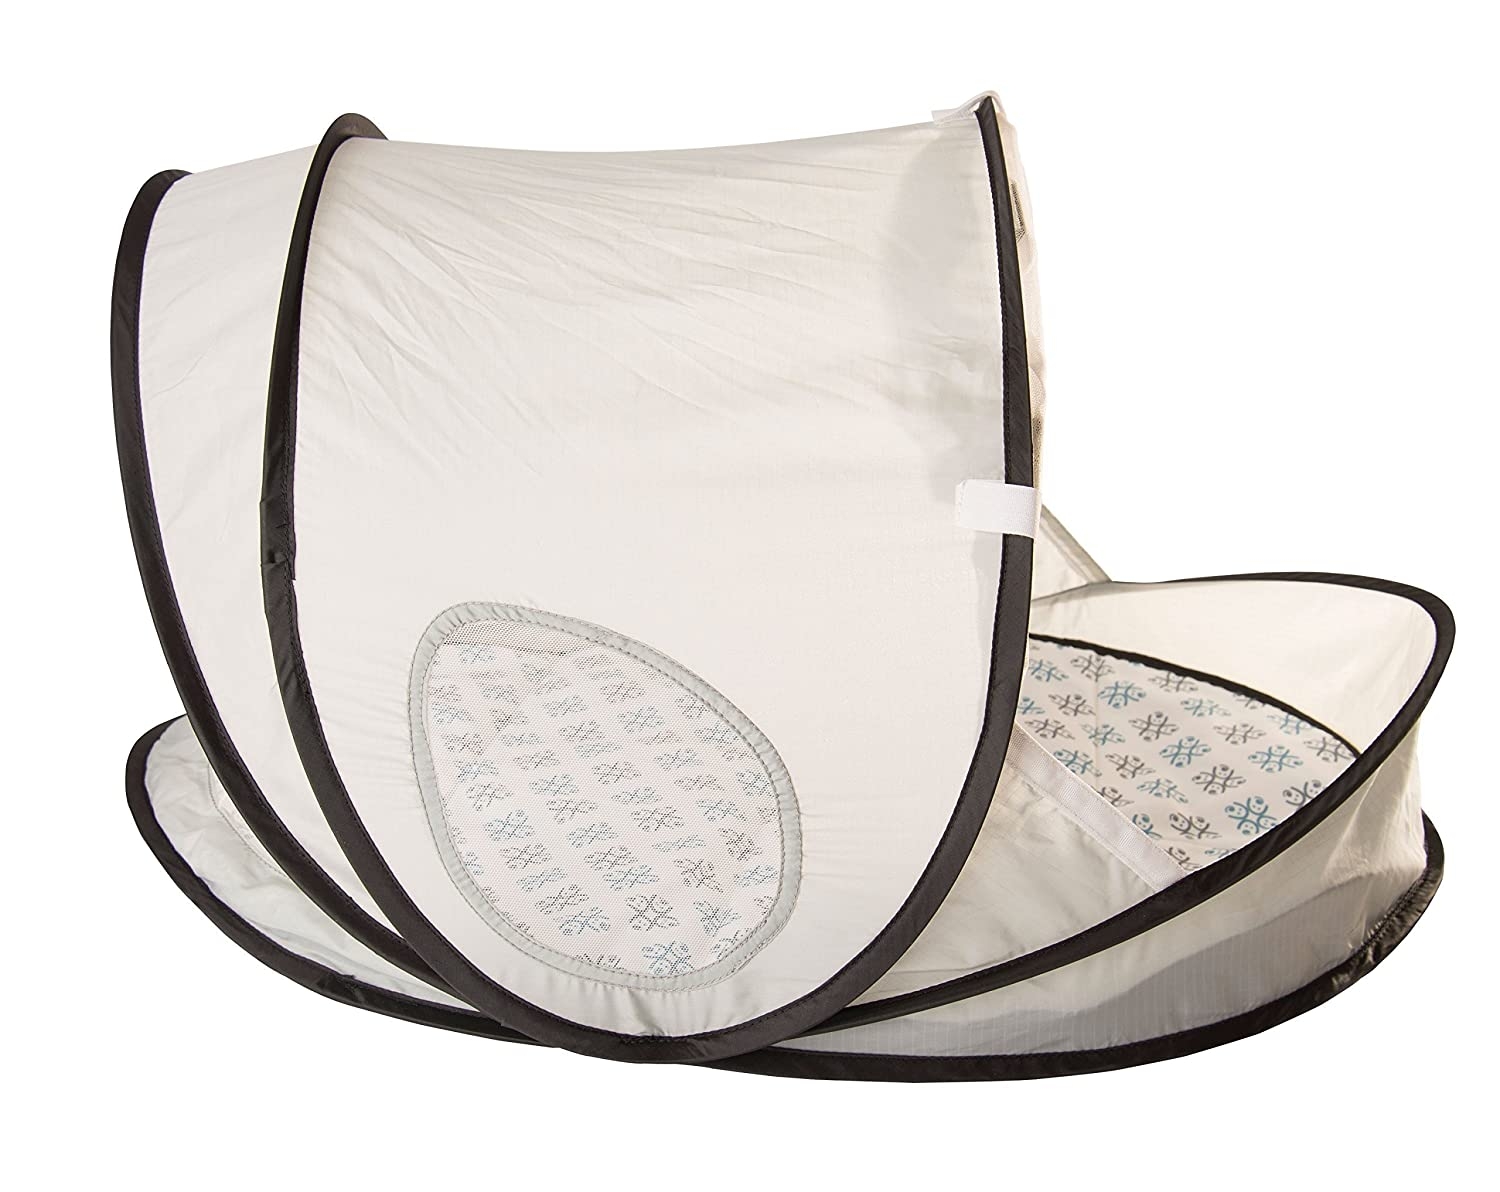 amazoncom  equiptbaby portable collapsible bassinet for babies  - amazoncom  equiptbaby portable collapsible bassinet for babies  familieson the move  baby